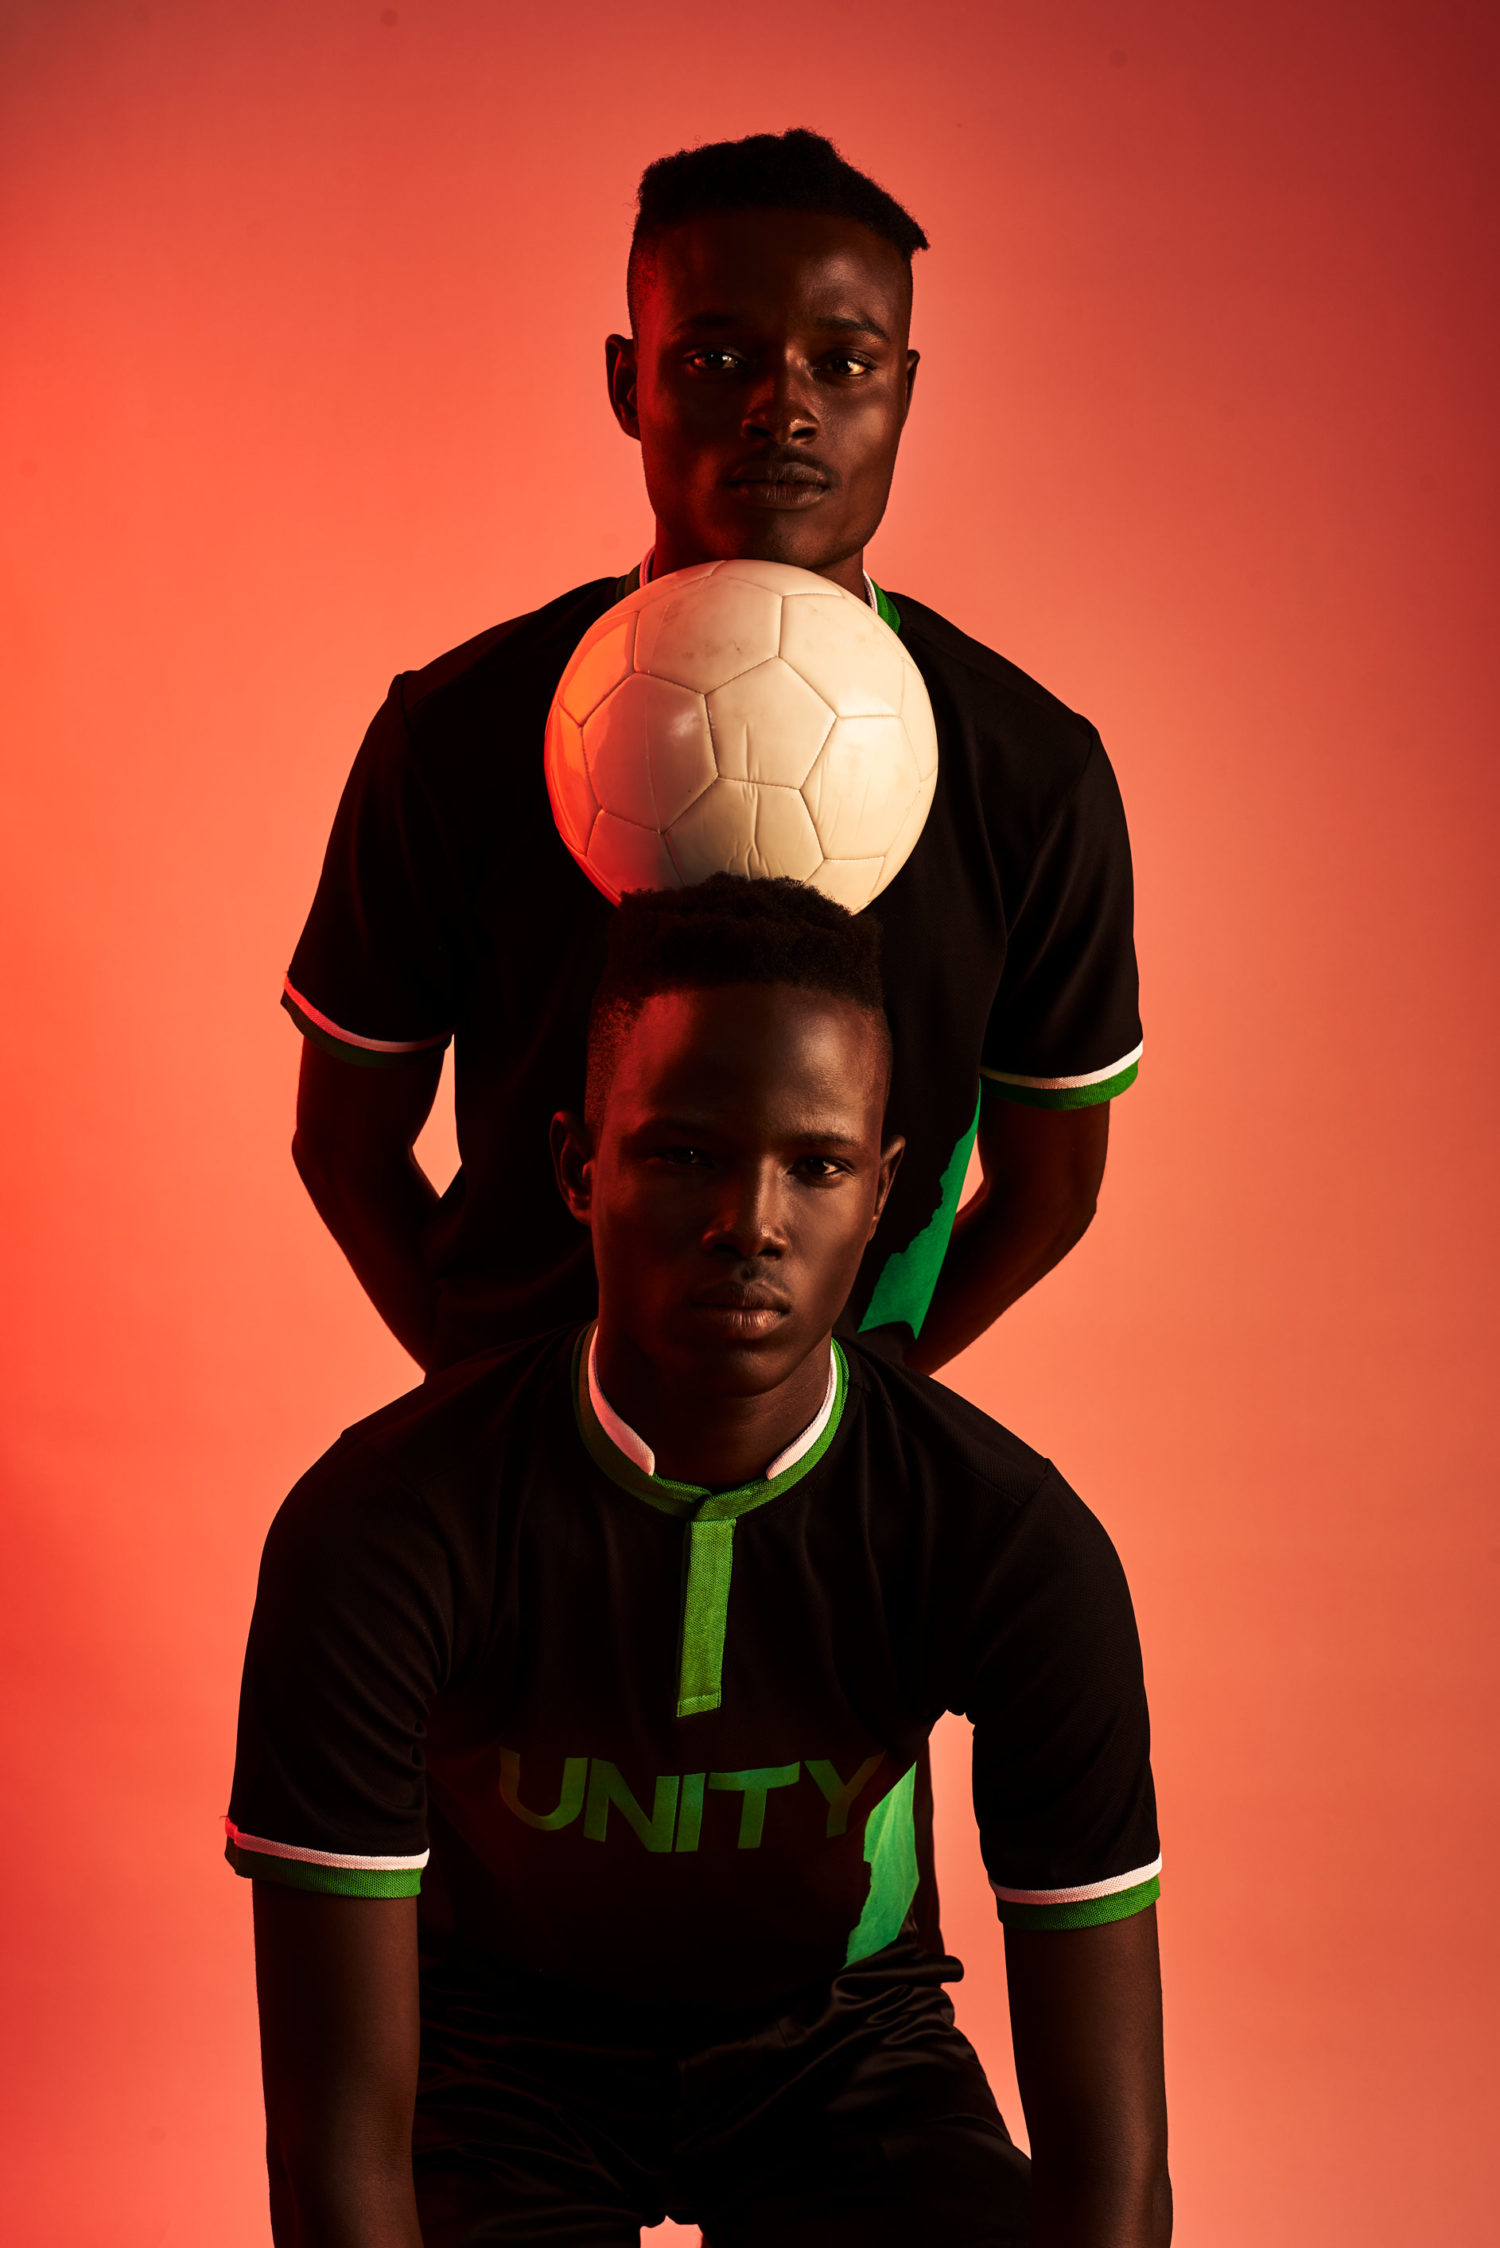 The Unity Collection by ONCHEK.com & Orange Culture x Shem Paronelli Issa GOAL!